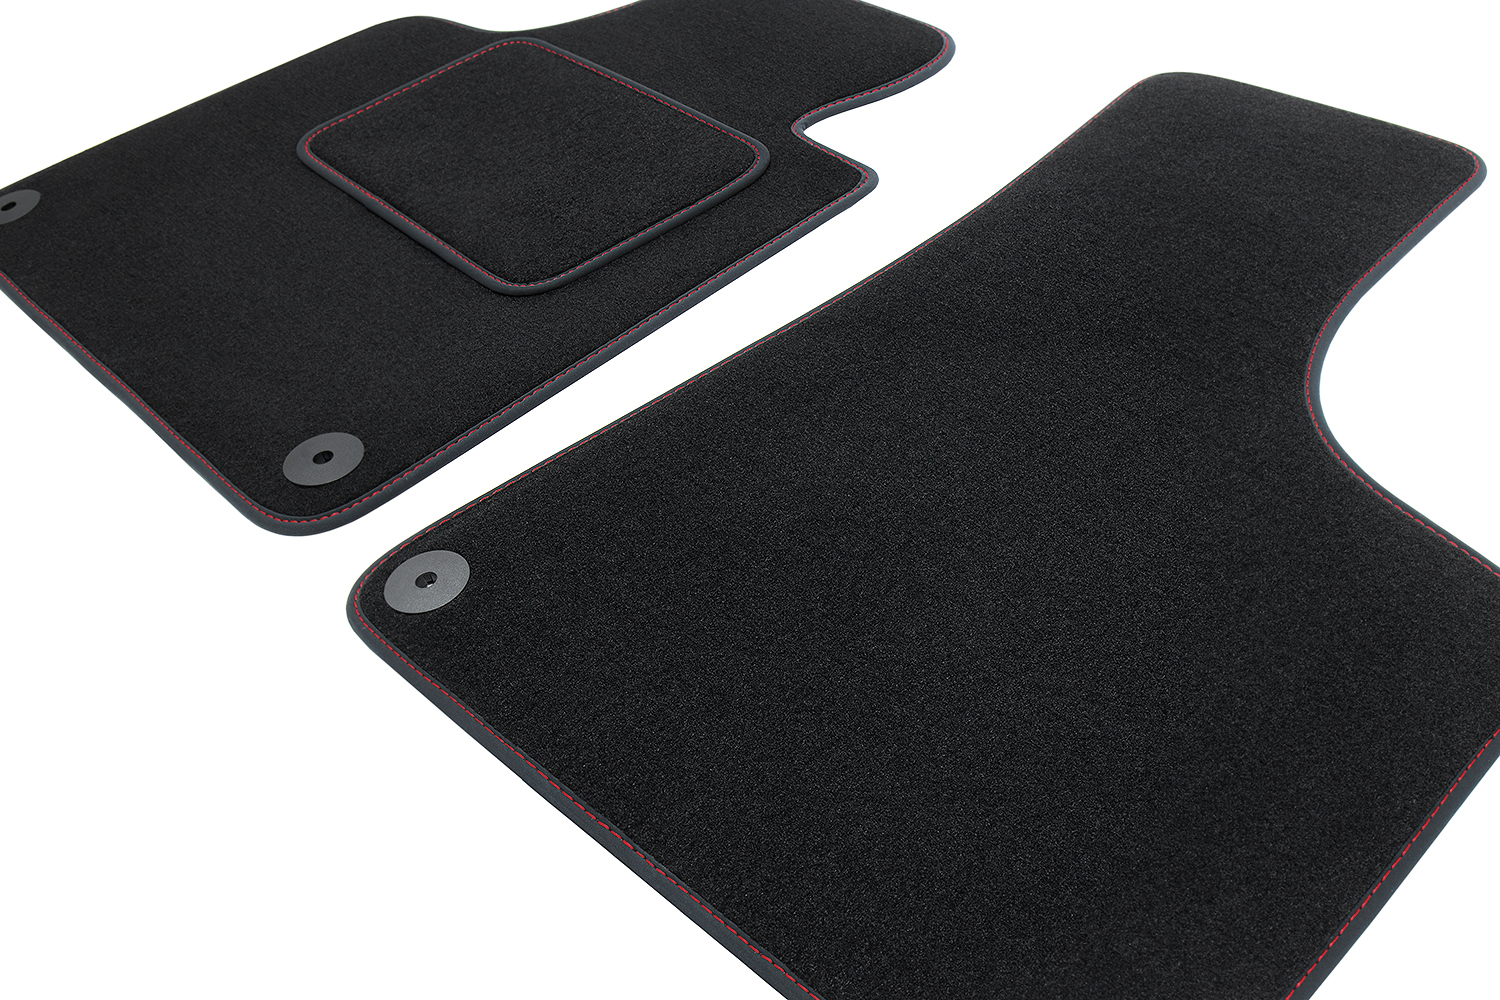 Premium Floor Mats Fits For Audi A3 8l From 1996 2003 Lhd Only